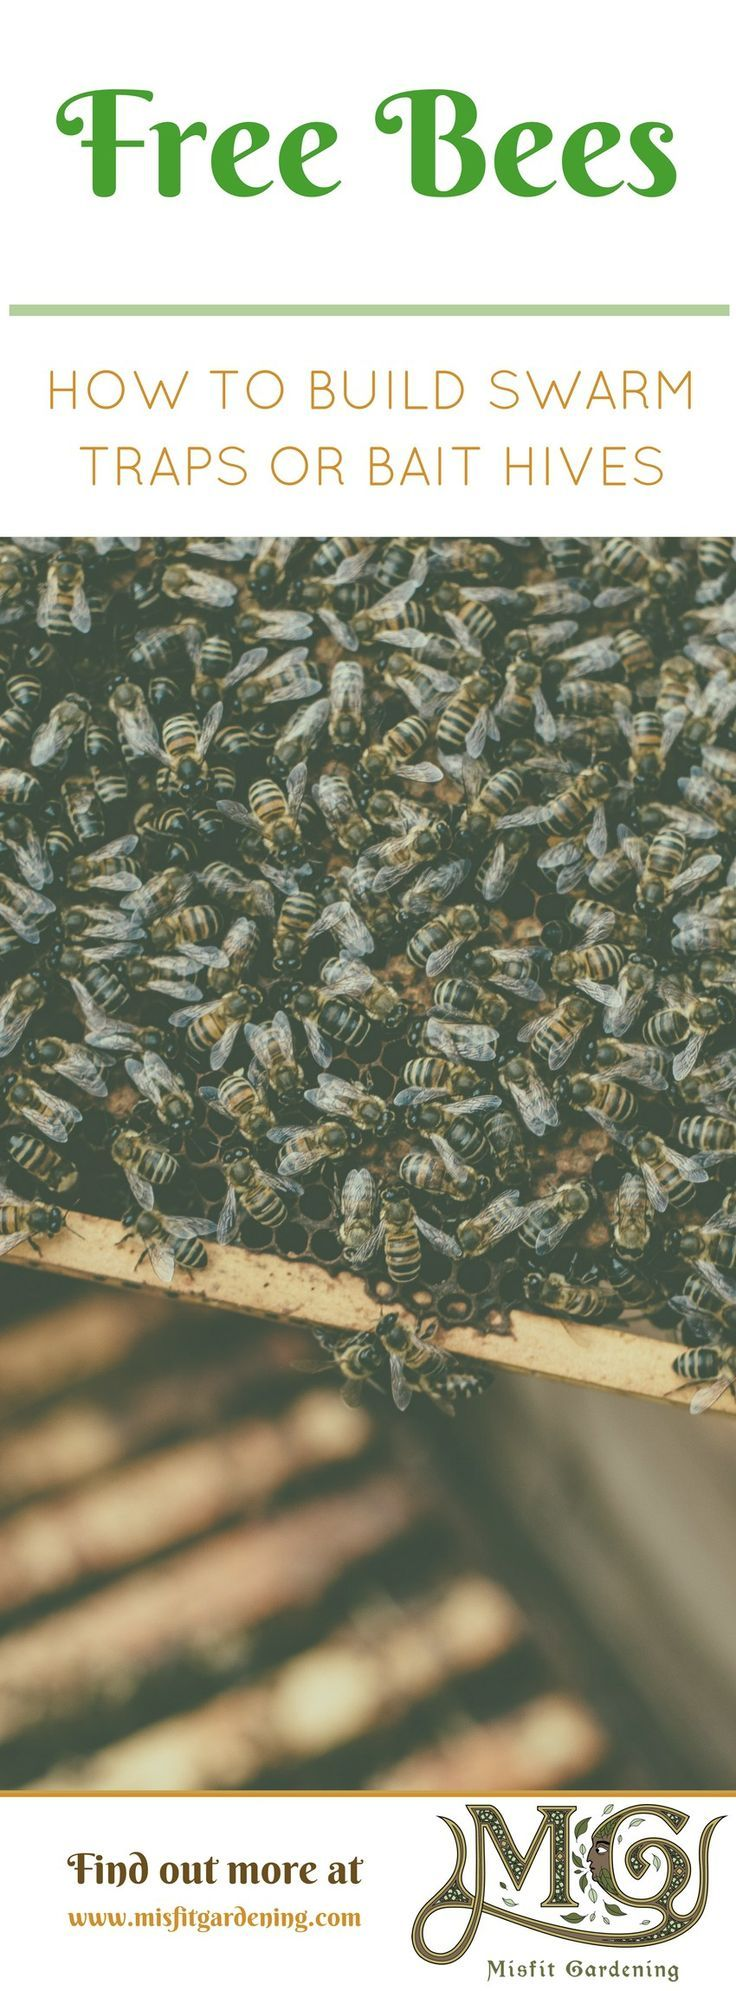 Start #beekeeping this spring with free bees by building a swarm trap. Click to find out how to build a swarm trap or bait hive or pin it and save for later